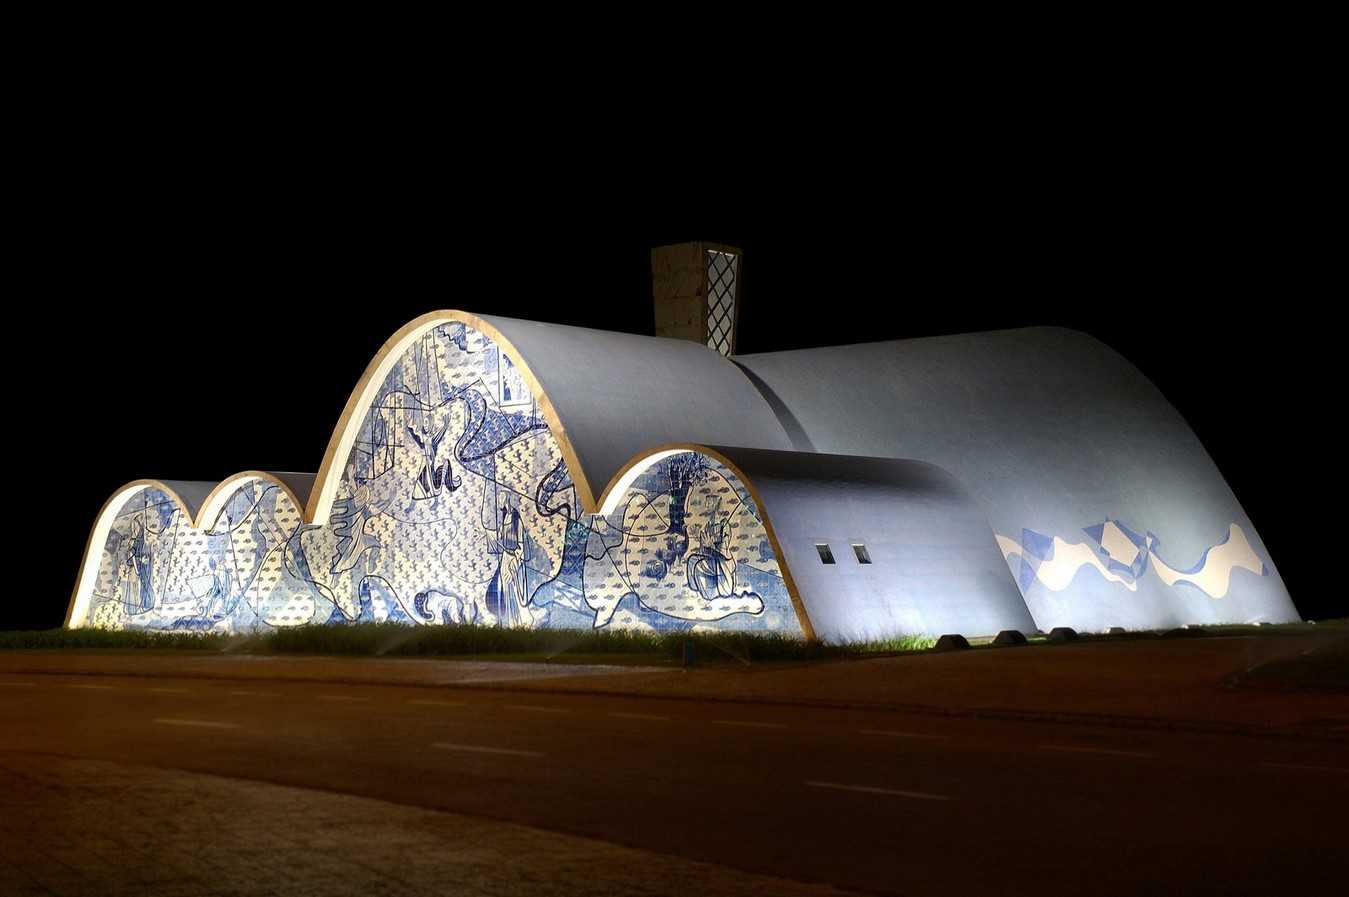 Church of Saint Francis of Assisi by Oscar Niemeyer: A Scandal in city's conservative culture - Sheet9